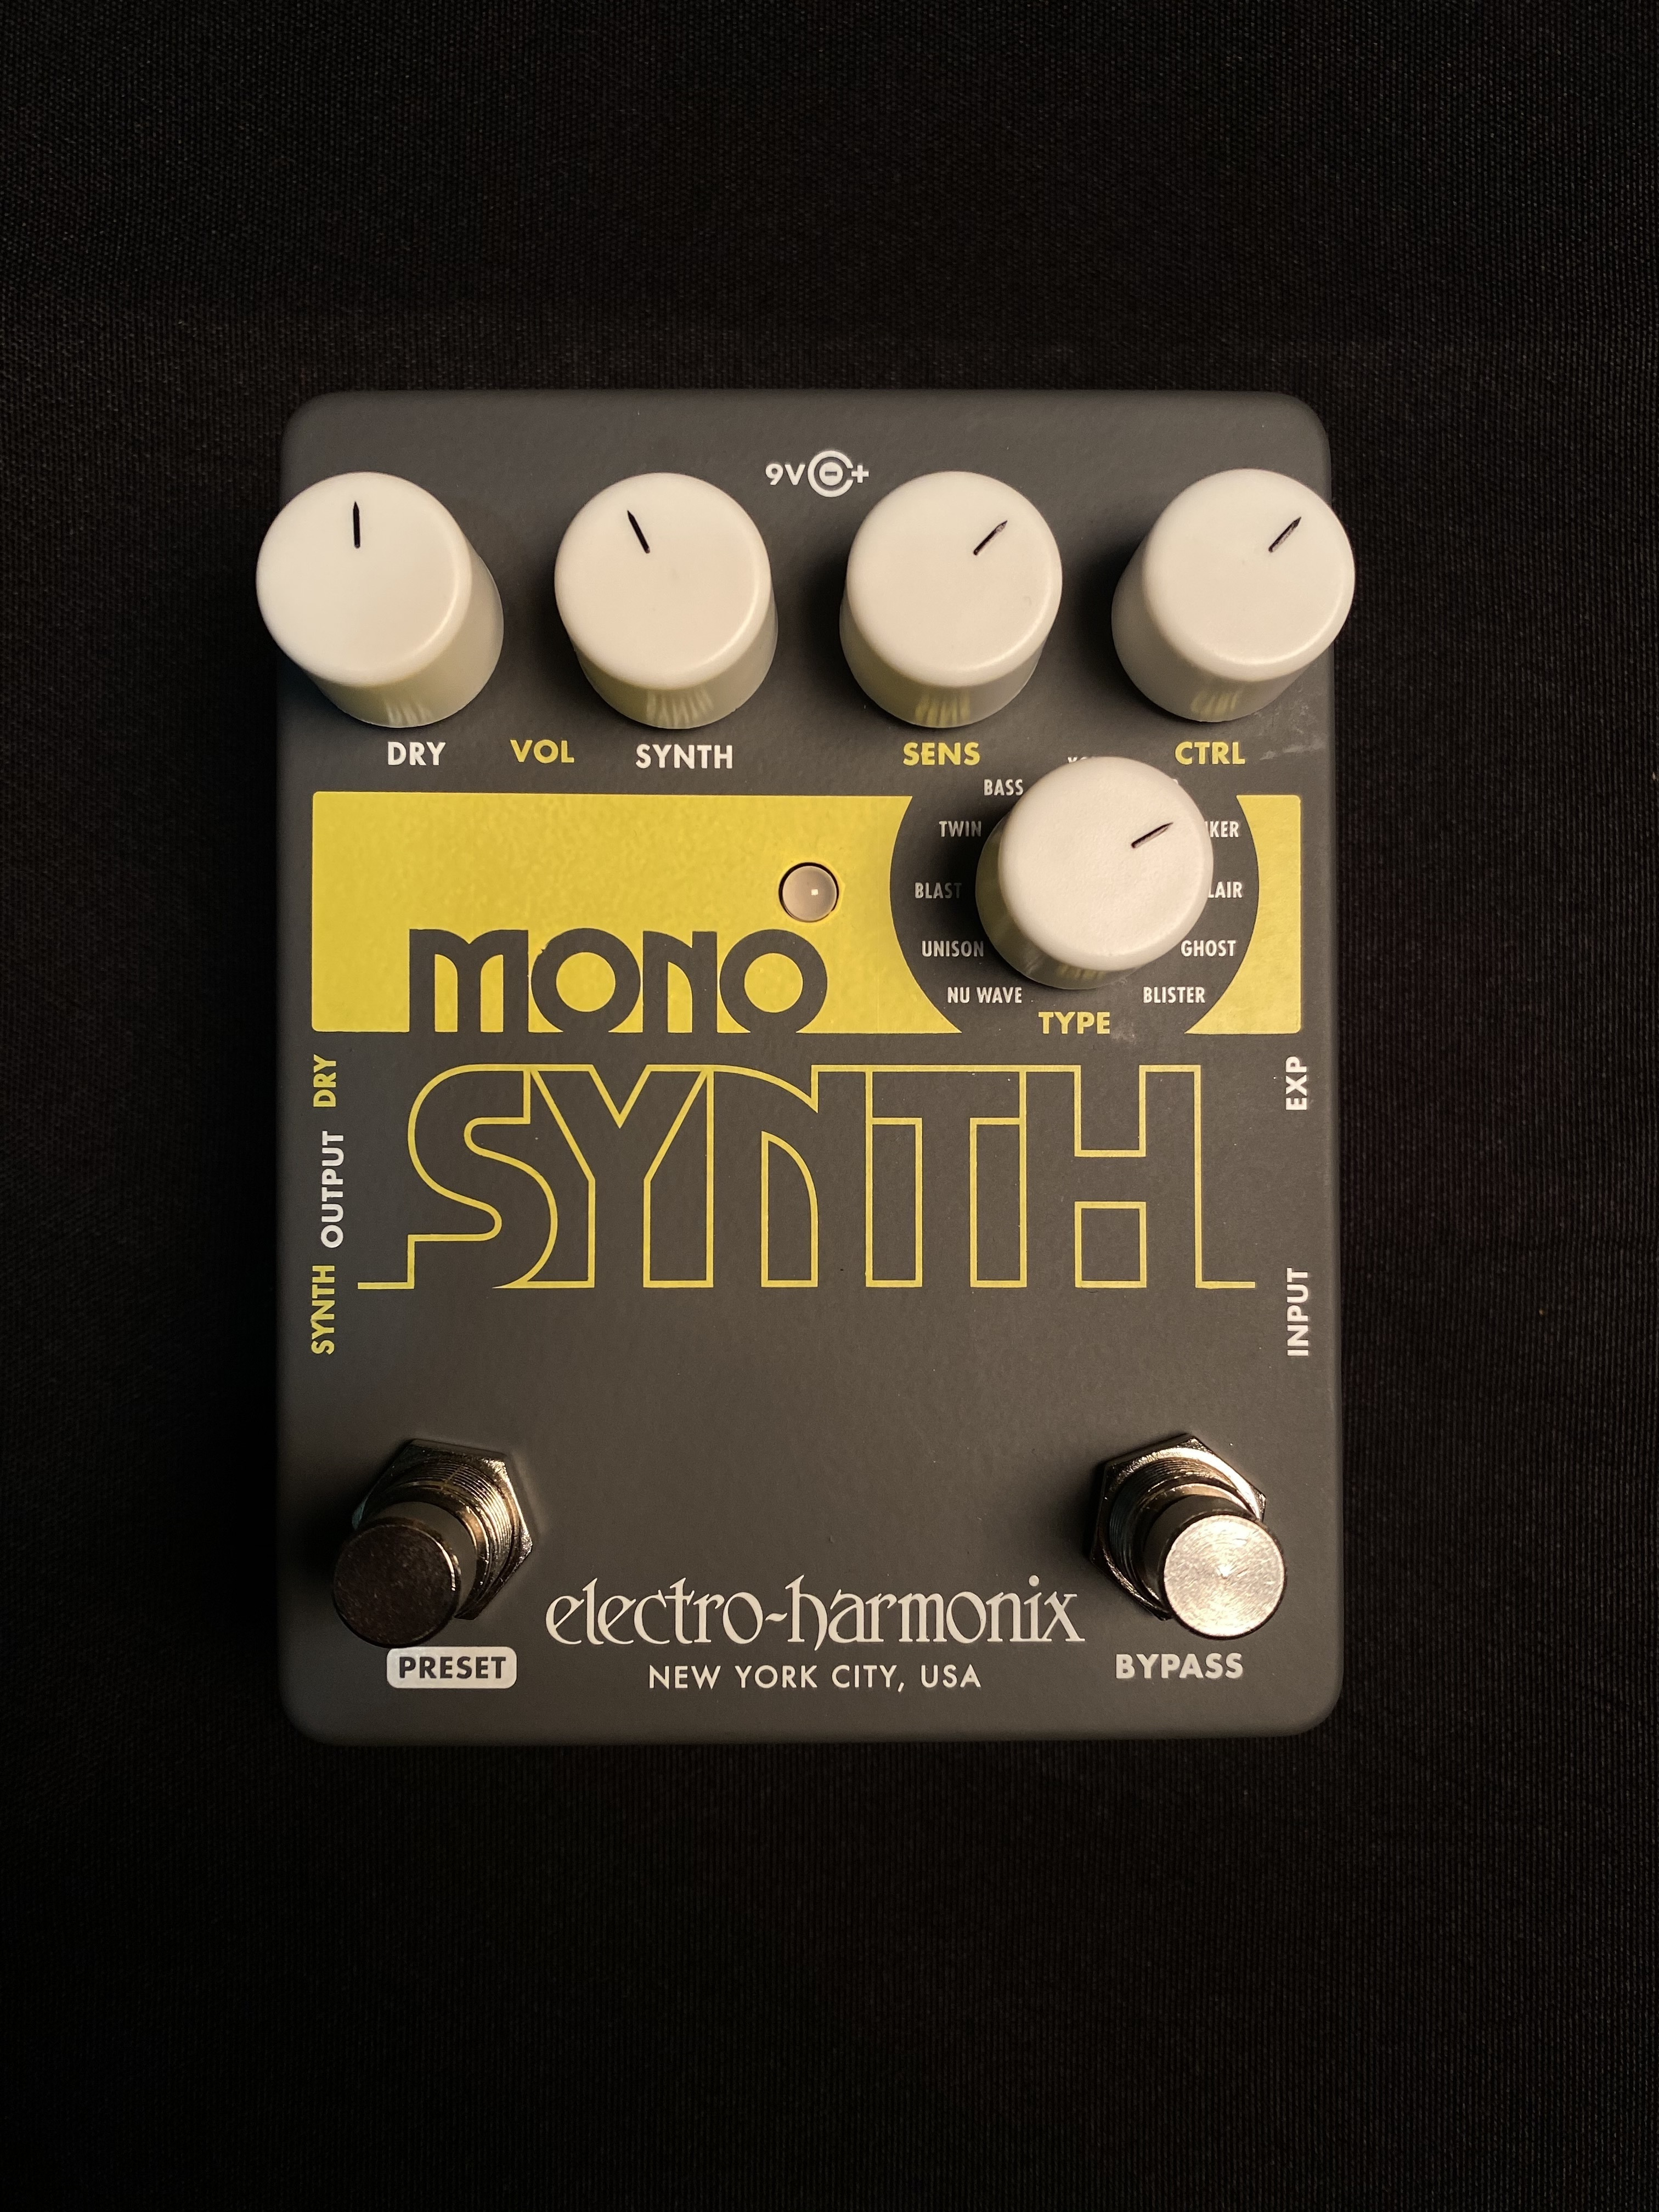 ELECTRO-HARMONIX - MONO SYNTH - SYNTHESIZER EFFECTS PEDAL